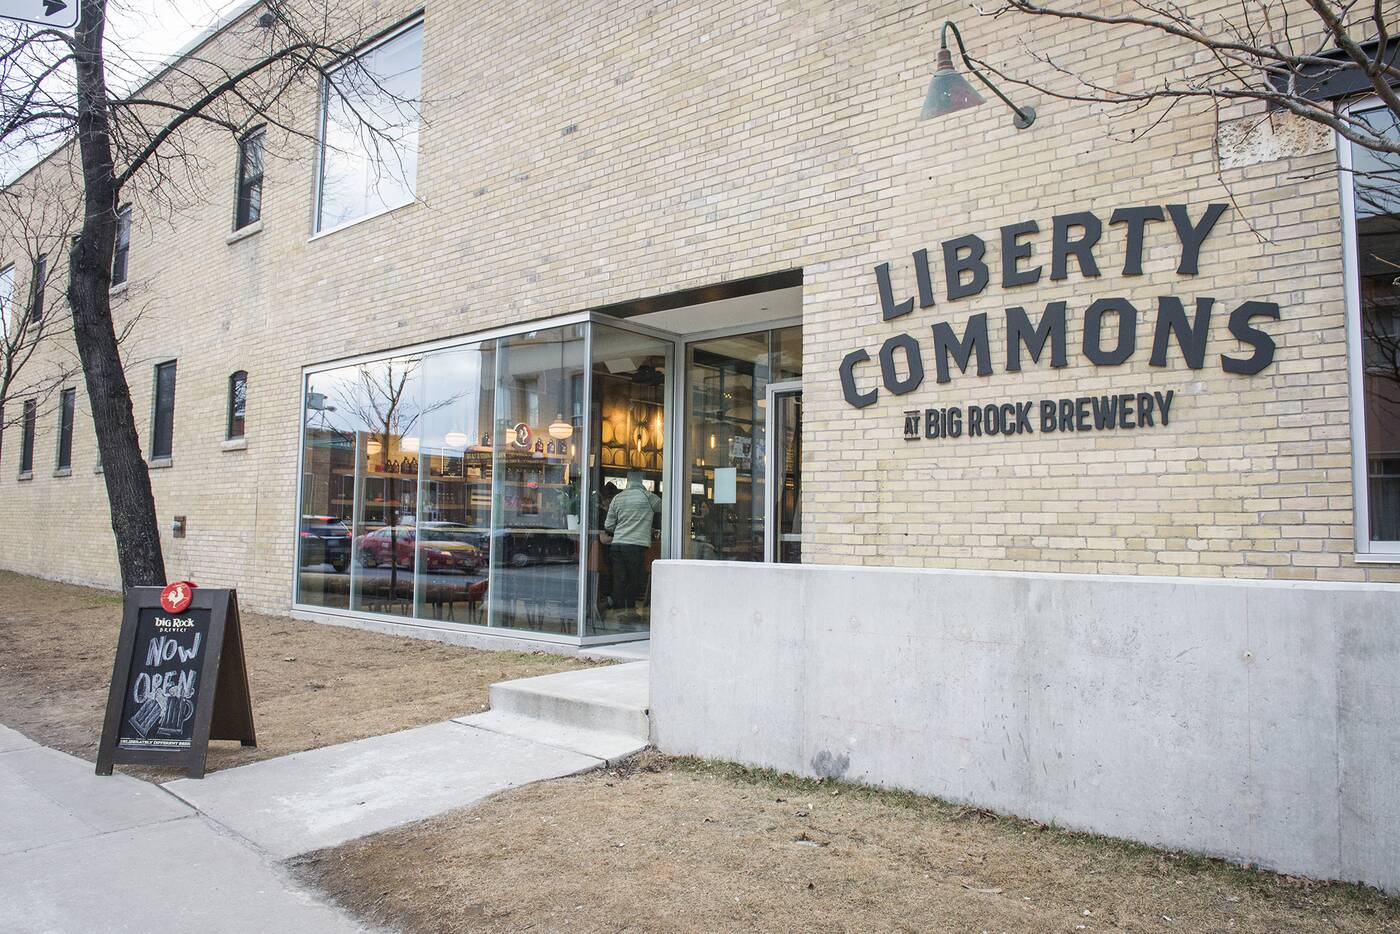 Liberty Commons Big Rock Brewery Toronto